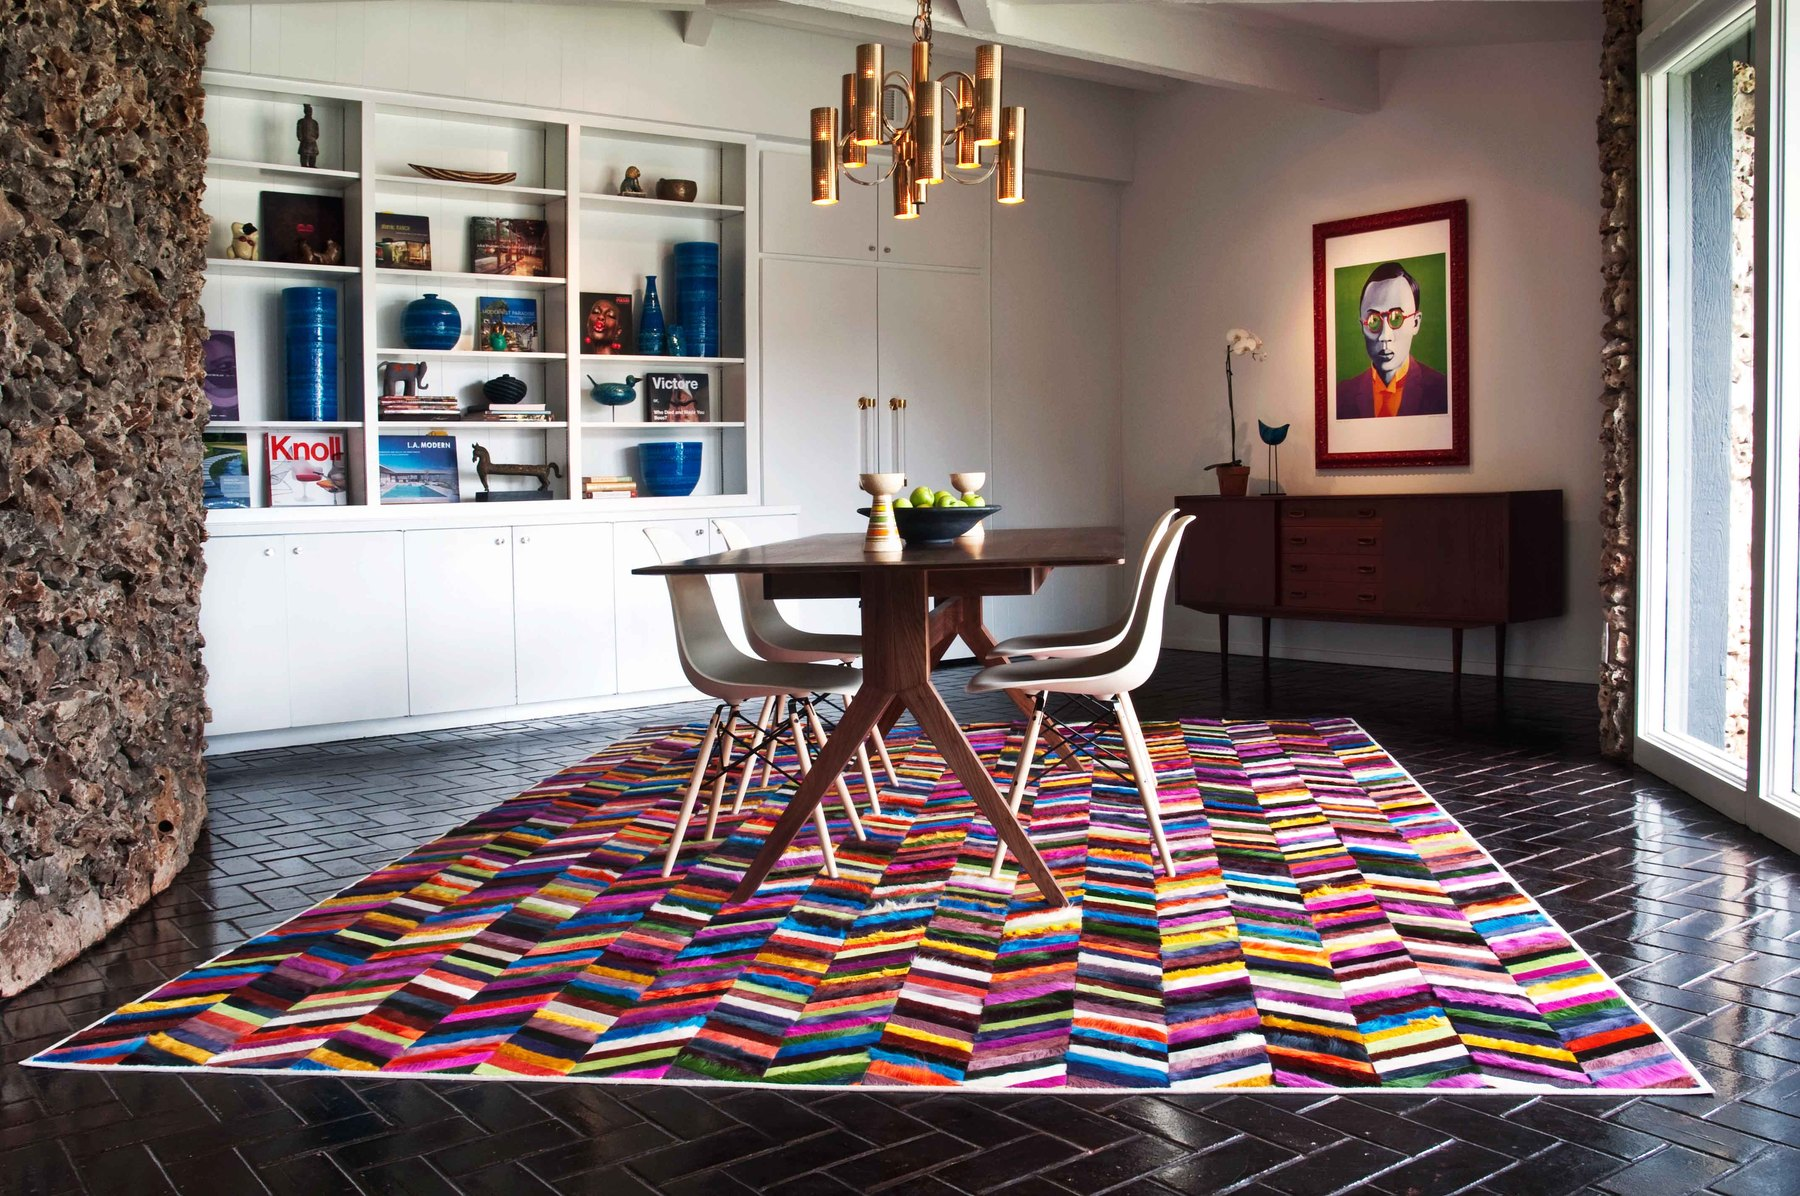 rug like that and it is absolutely the greatest pick for a dining room